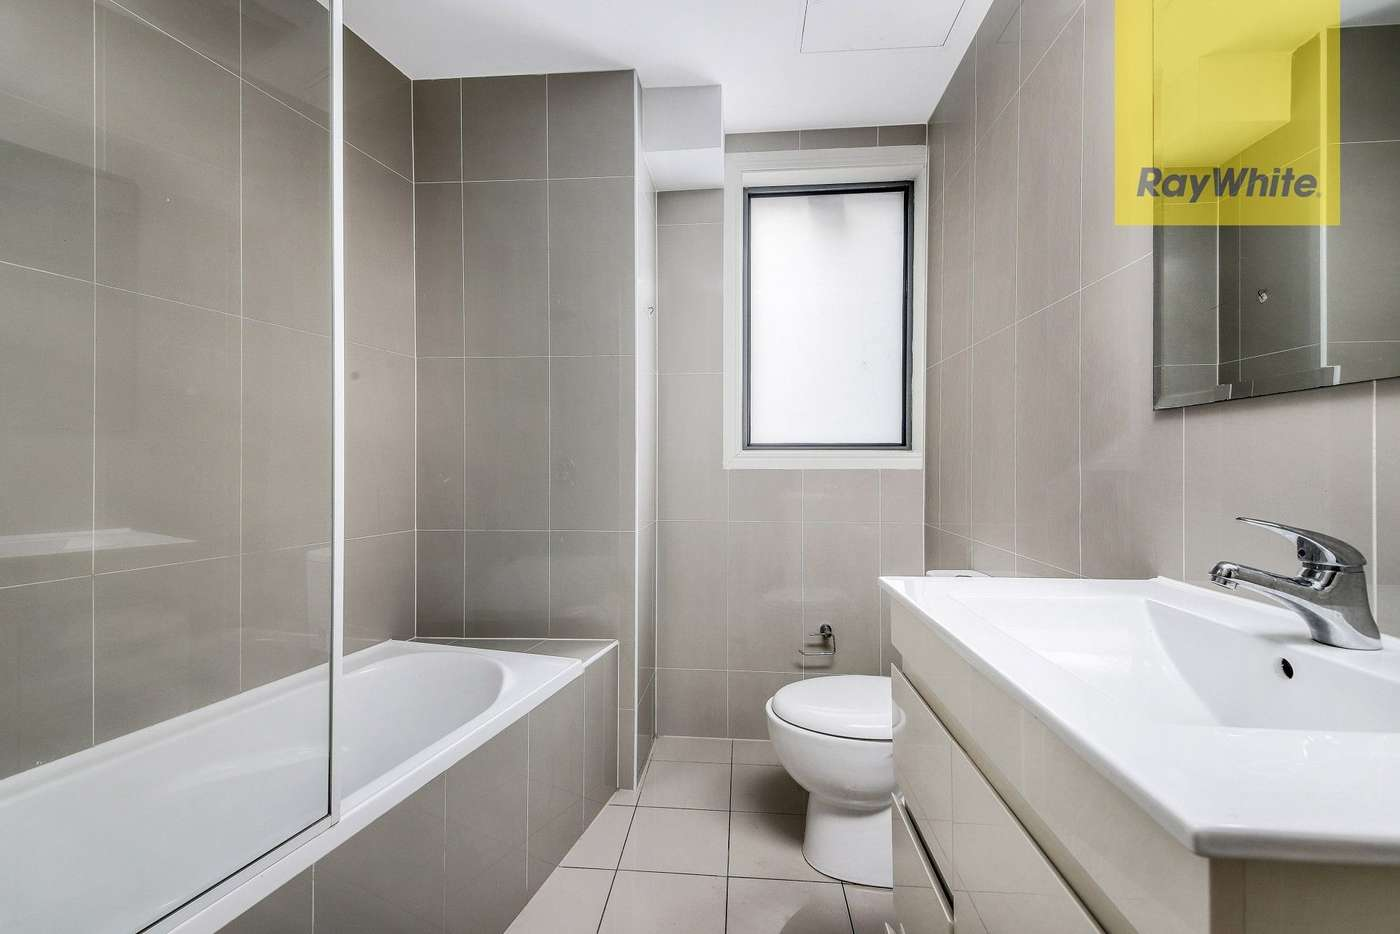 Fifth view of Homely apartment listing, 402/6-10 Charles Street, Parramatta NSW 2150